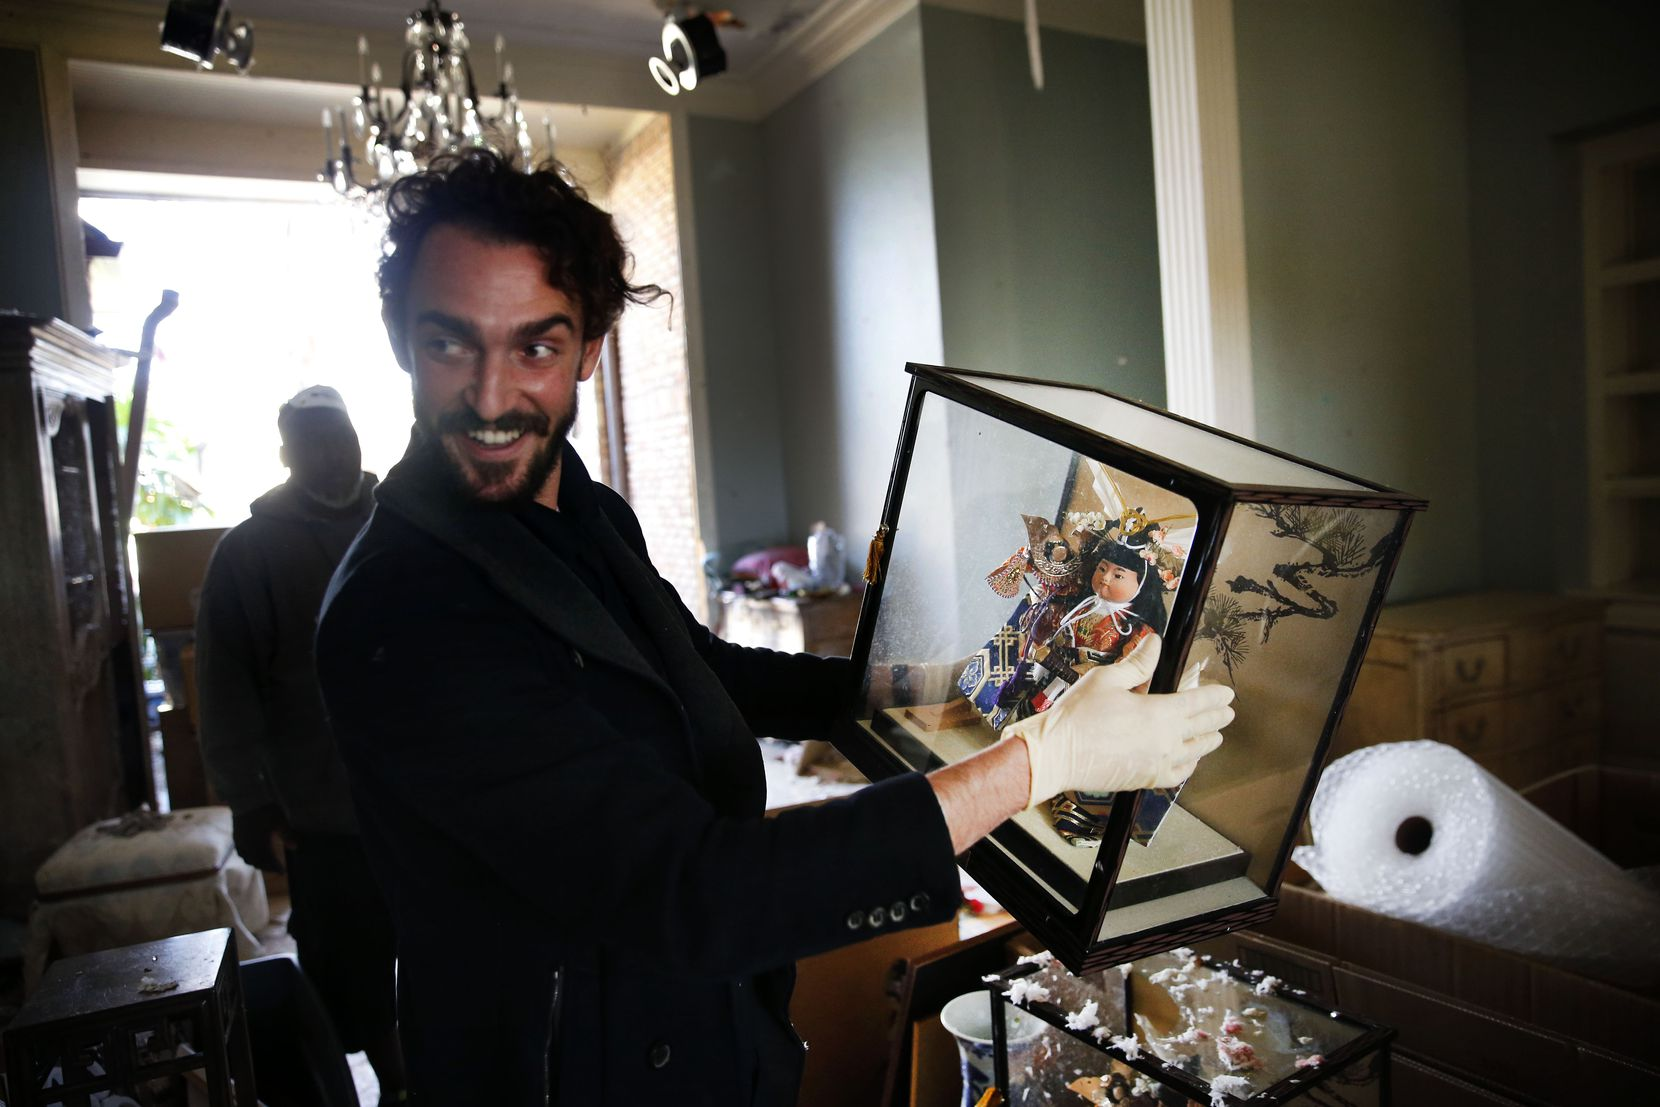 Joshua von Ammon of ART of Dallas-Fort Worth, an art recovery and restoration company, is surprised how the Asian dolls were undamaged in Brenda Schneider's Preston Hollow neighborhood home in Dallas, Tuesday, Oct. 22, 2019.